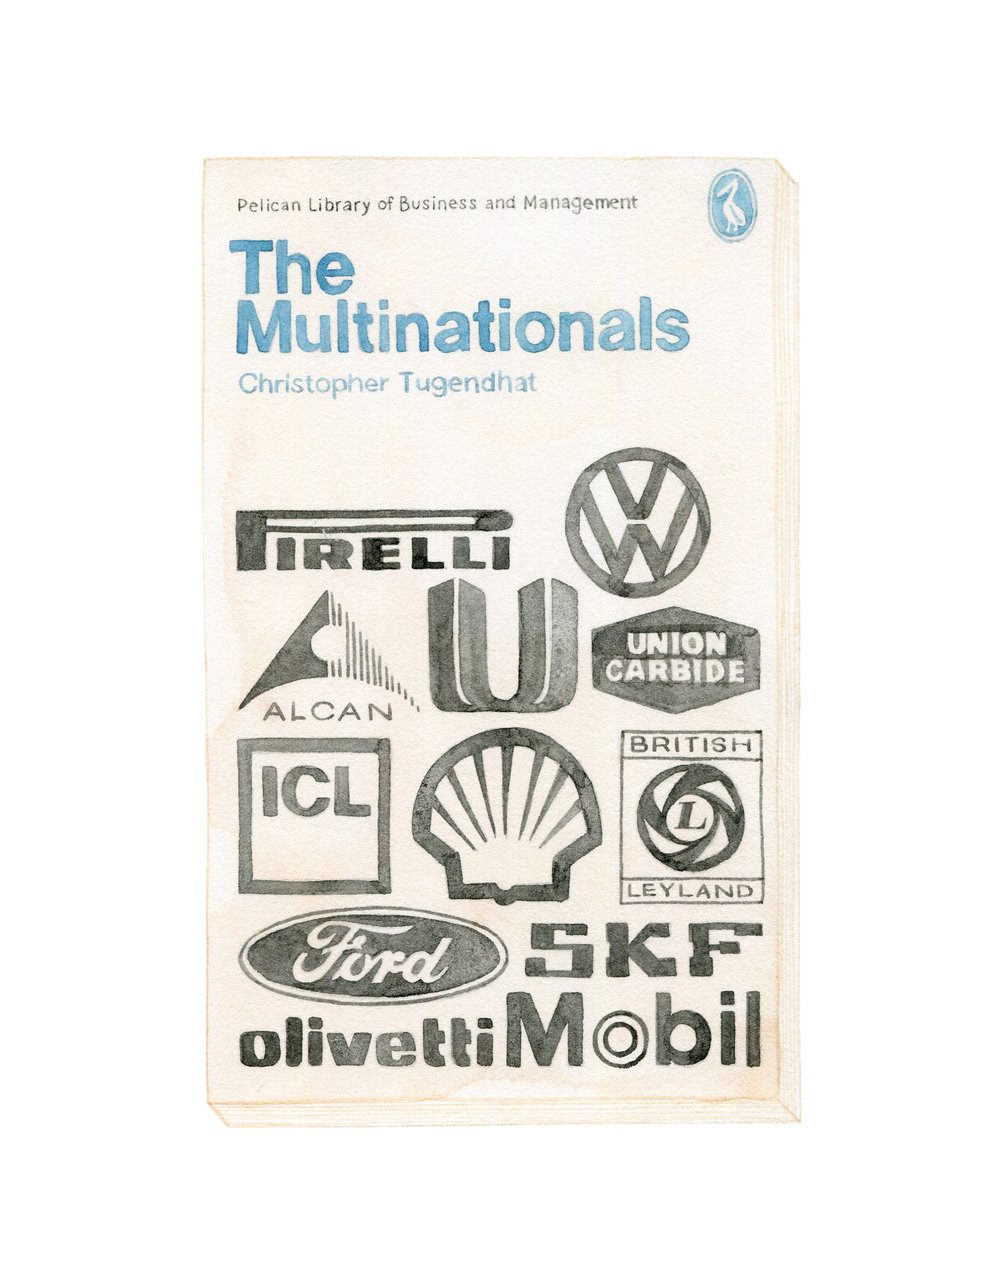 stephenson_vintagebooks_themultinationals_2.jpg